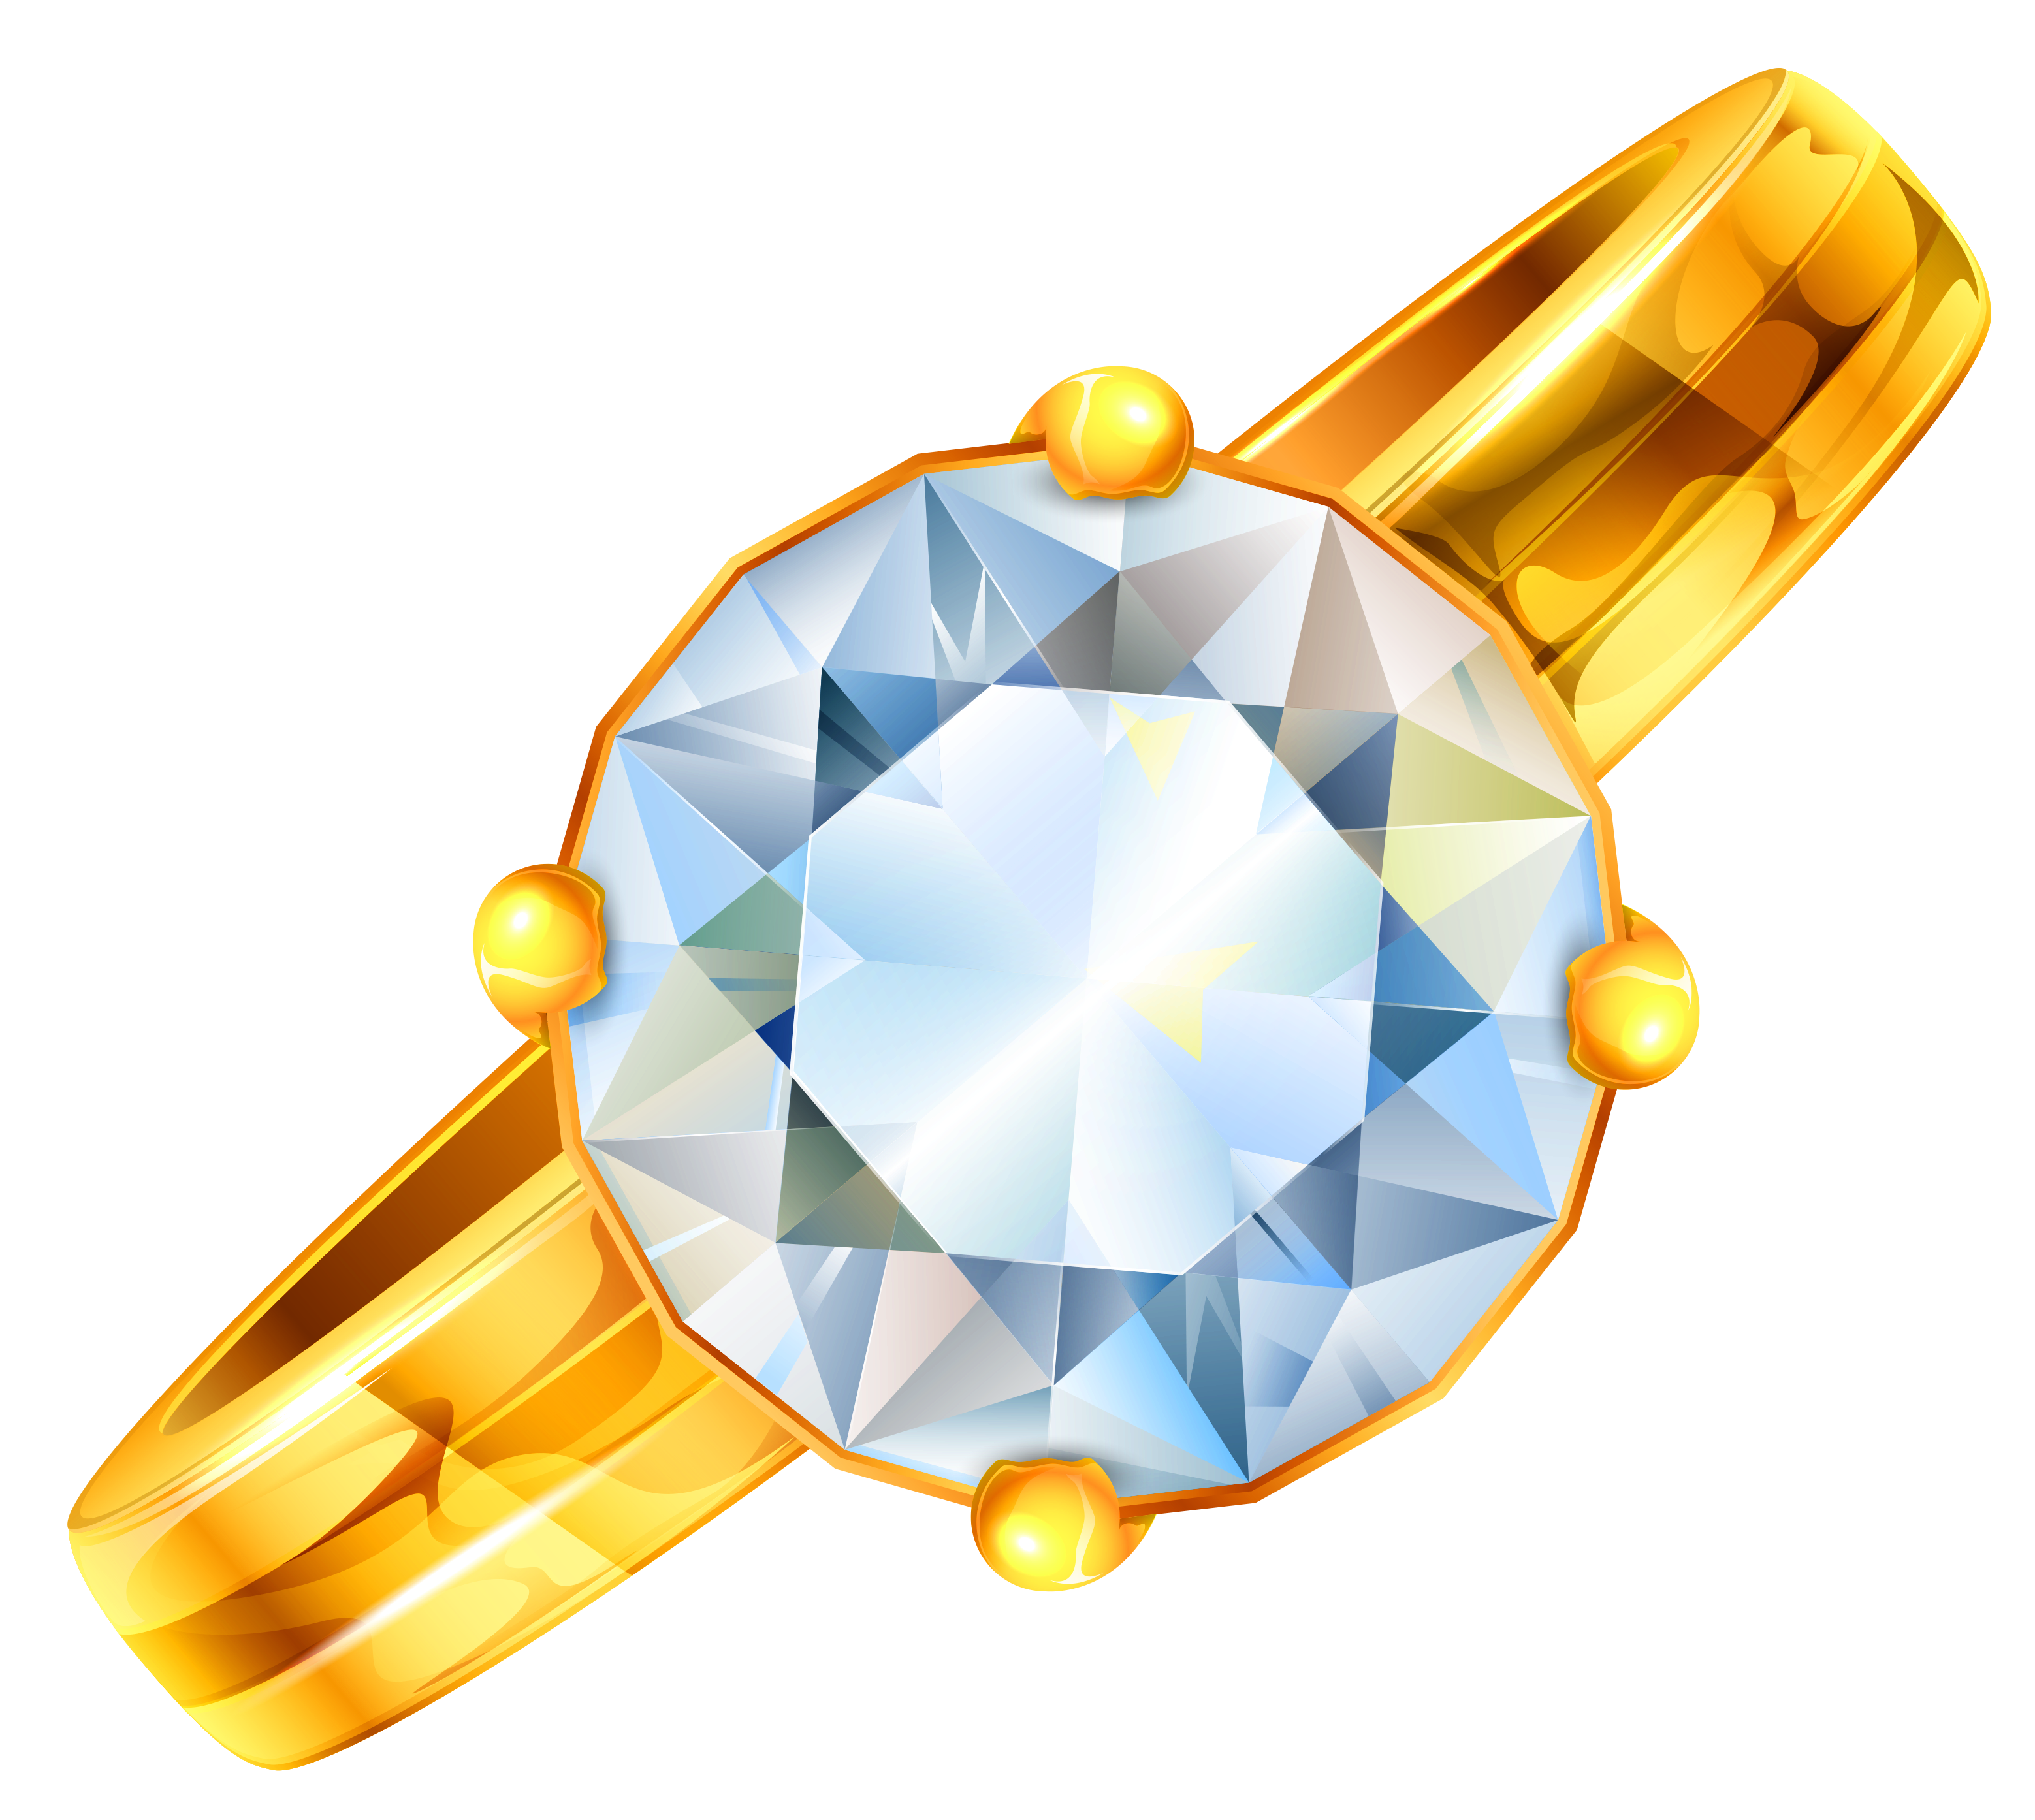 Gold Ring with Diamond Clipart.